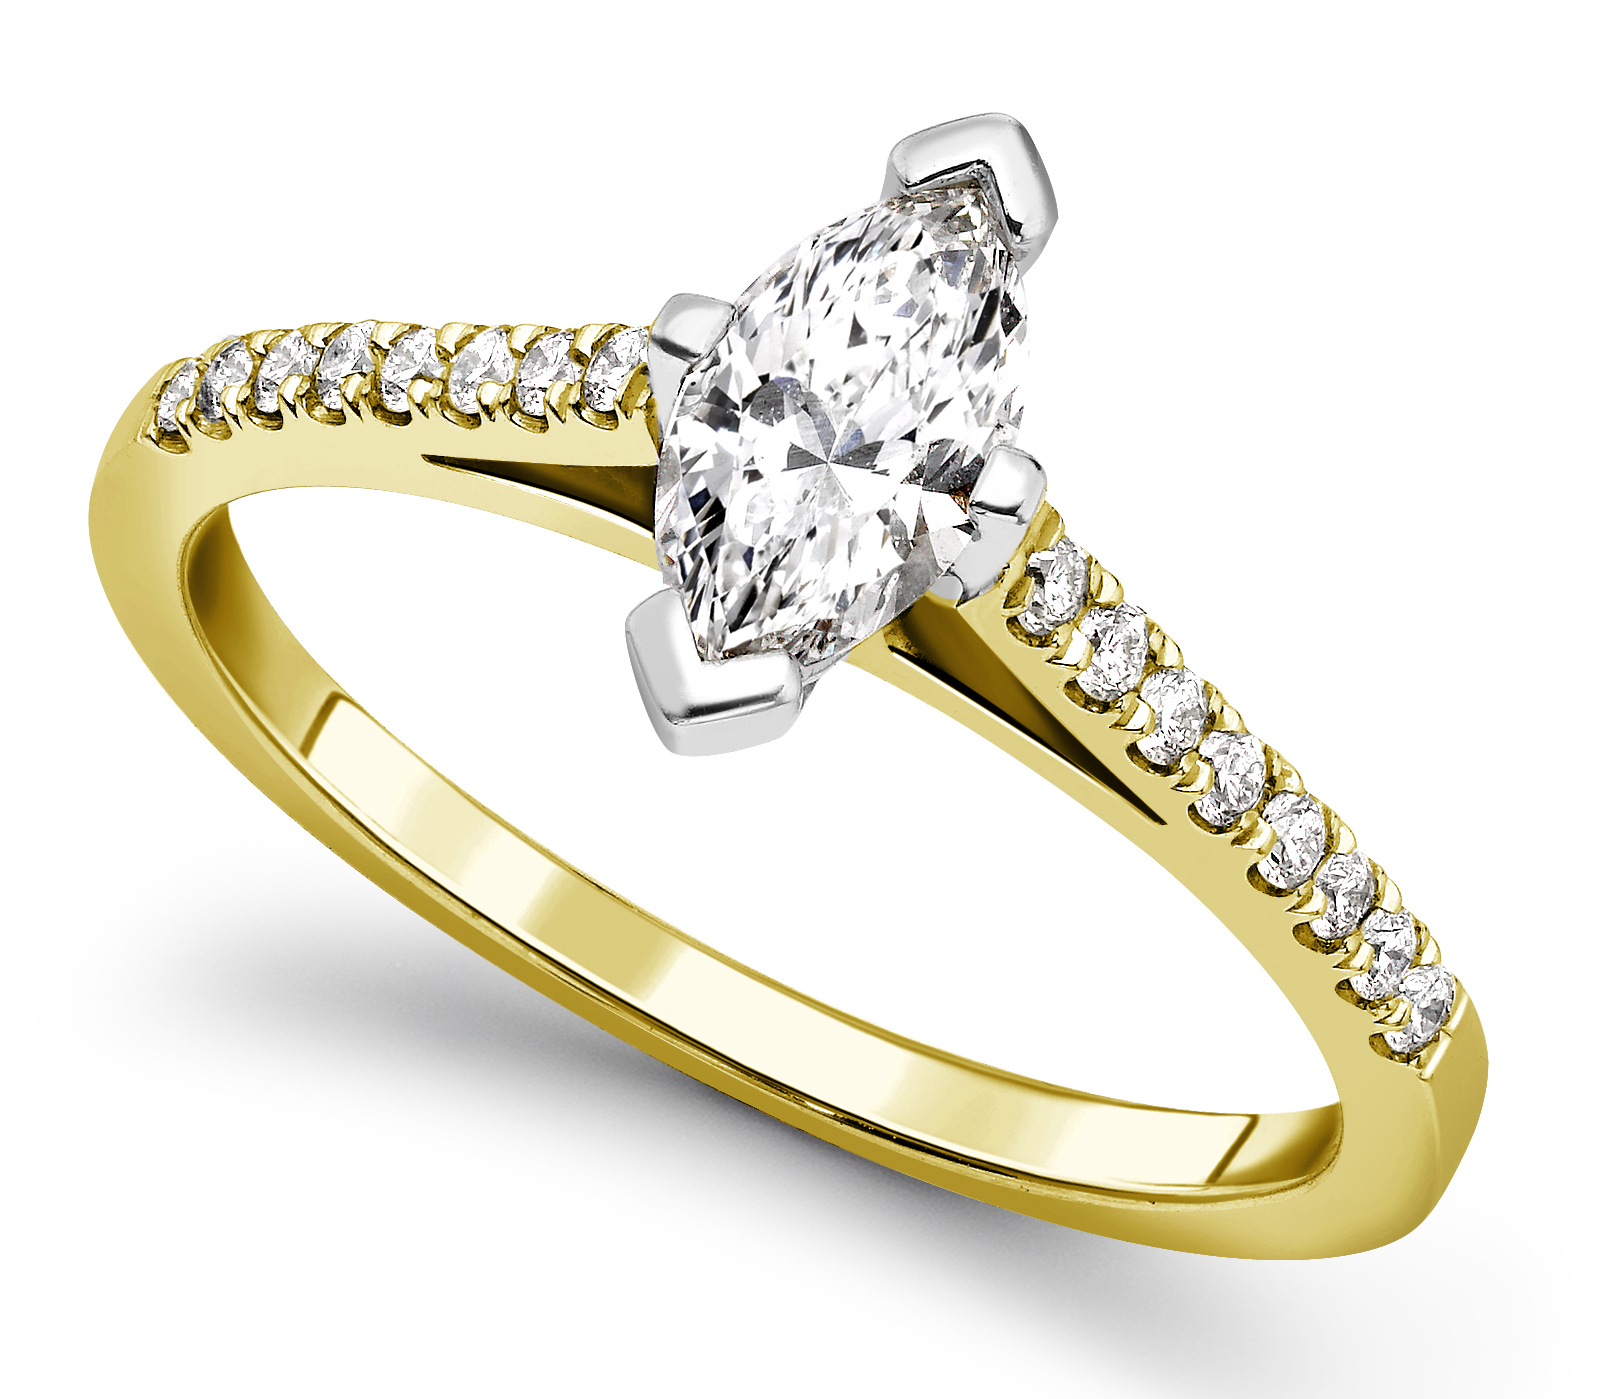 Marquise Cut 4 Claw Yellow Gold Diamond Engagement Ring GRC699YG Main Image